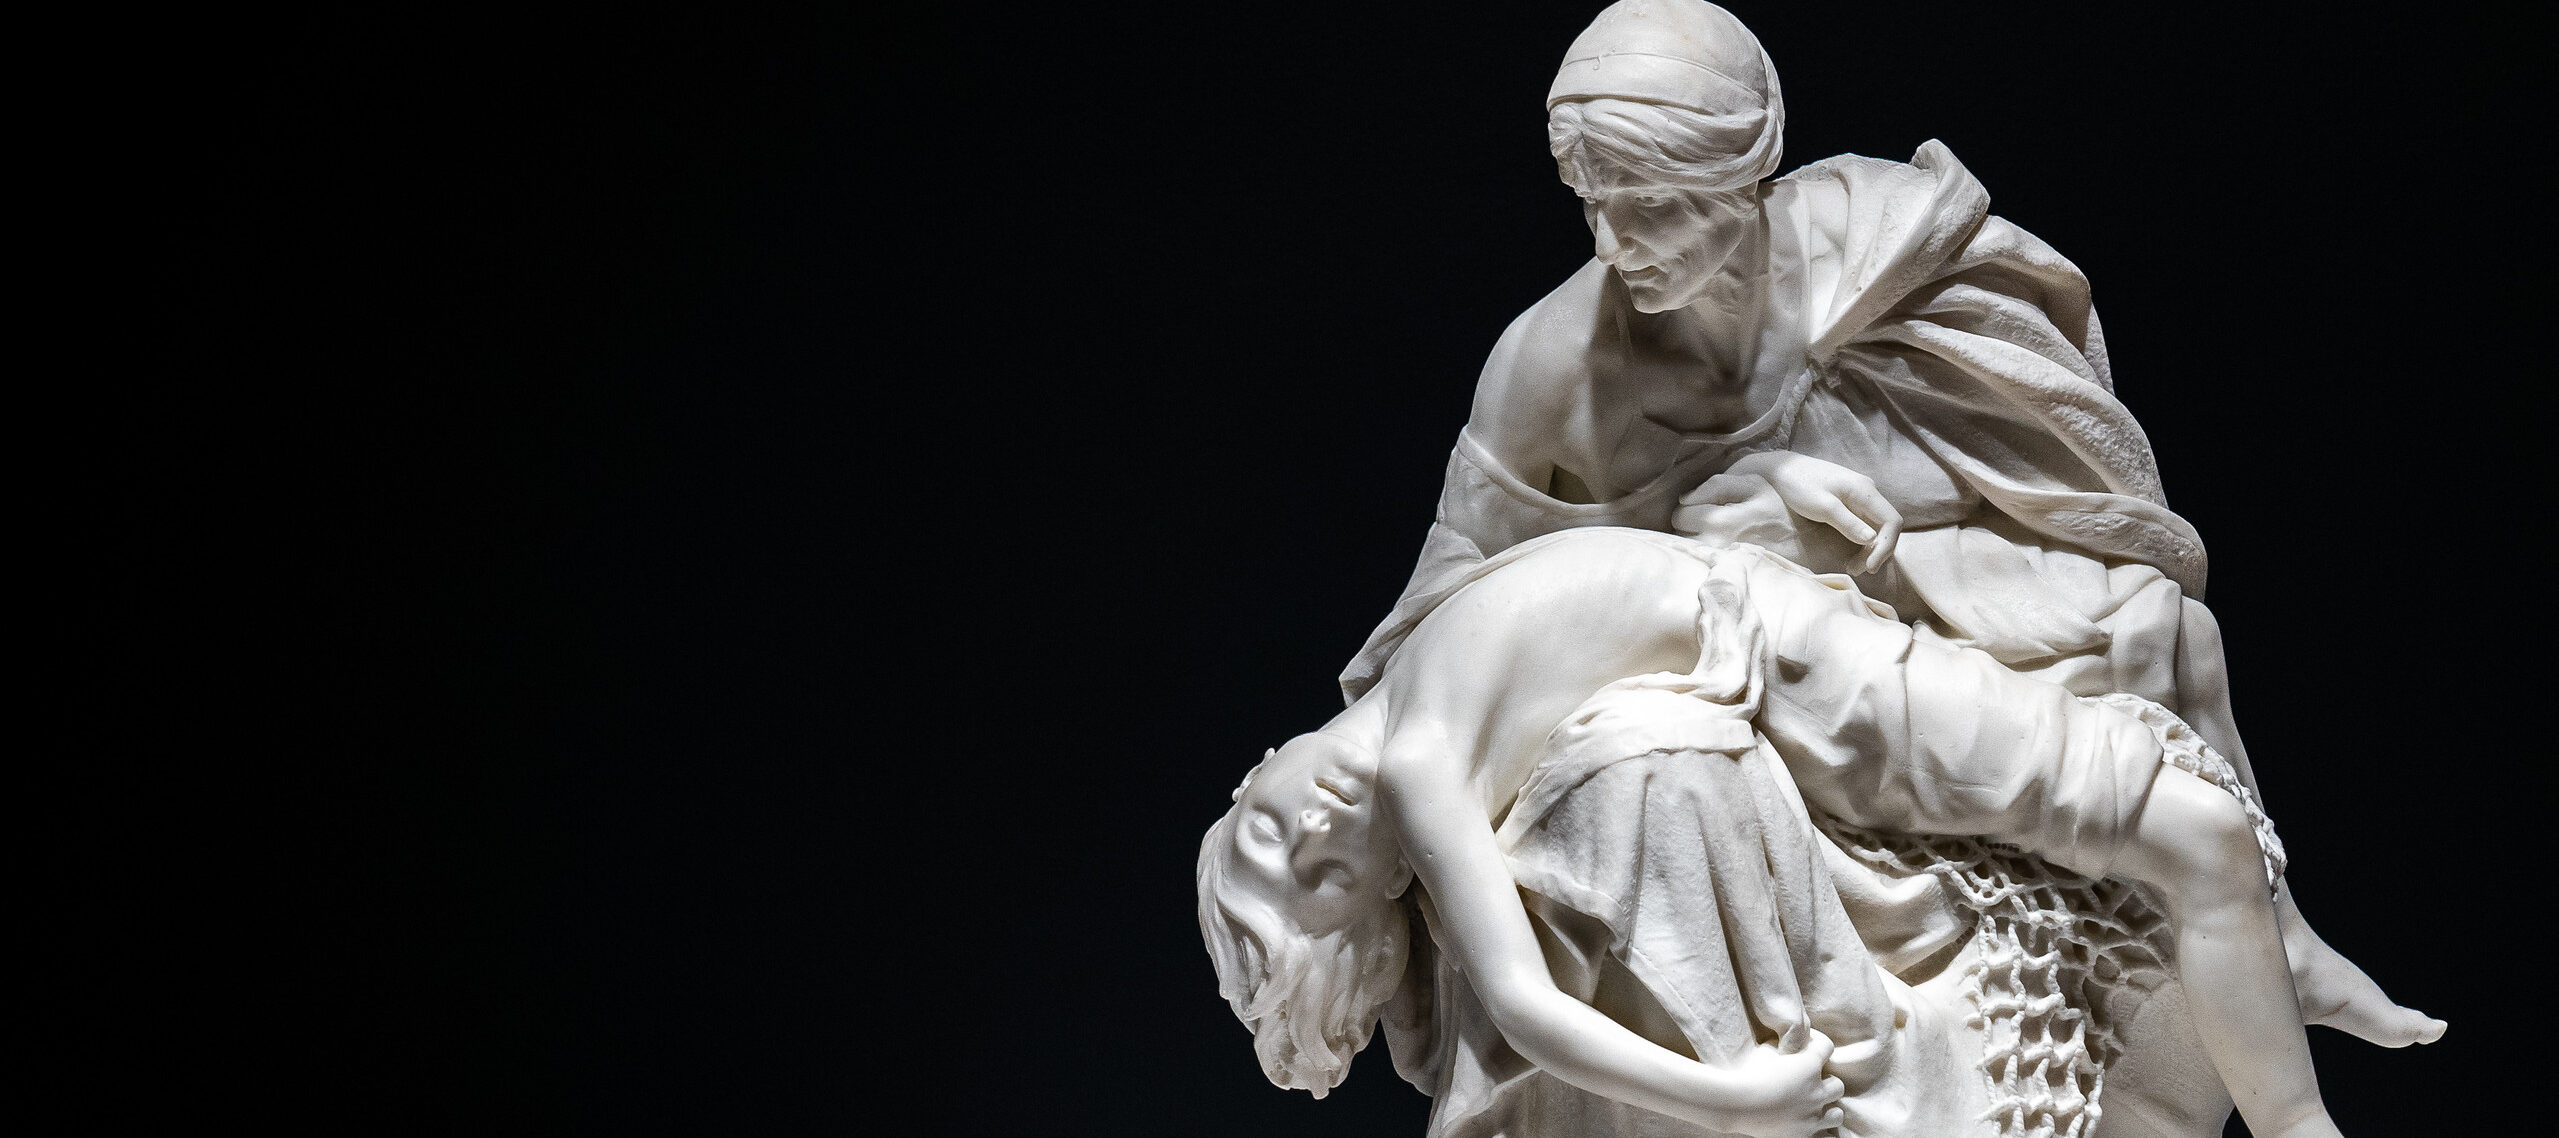 Sarah Bernhardt, <i>Après la tempête (After the Storm)</i>, ca. 1876; White marble, 29 1/2 x 24 x 23 in.; National Museum of Women in the Arts, Gift of Wallace and Wilhelmina Holladay; Photo credit: Cameron Robinson